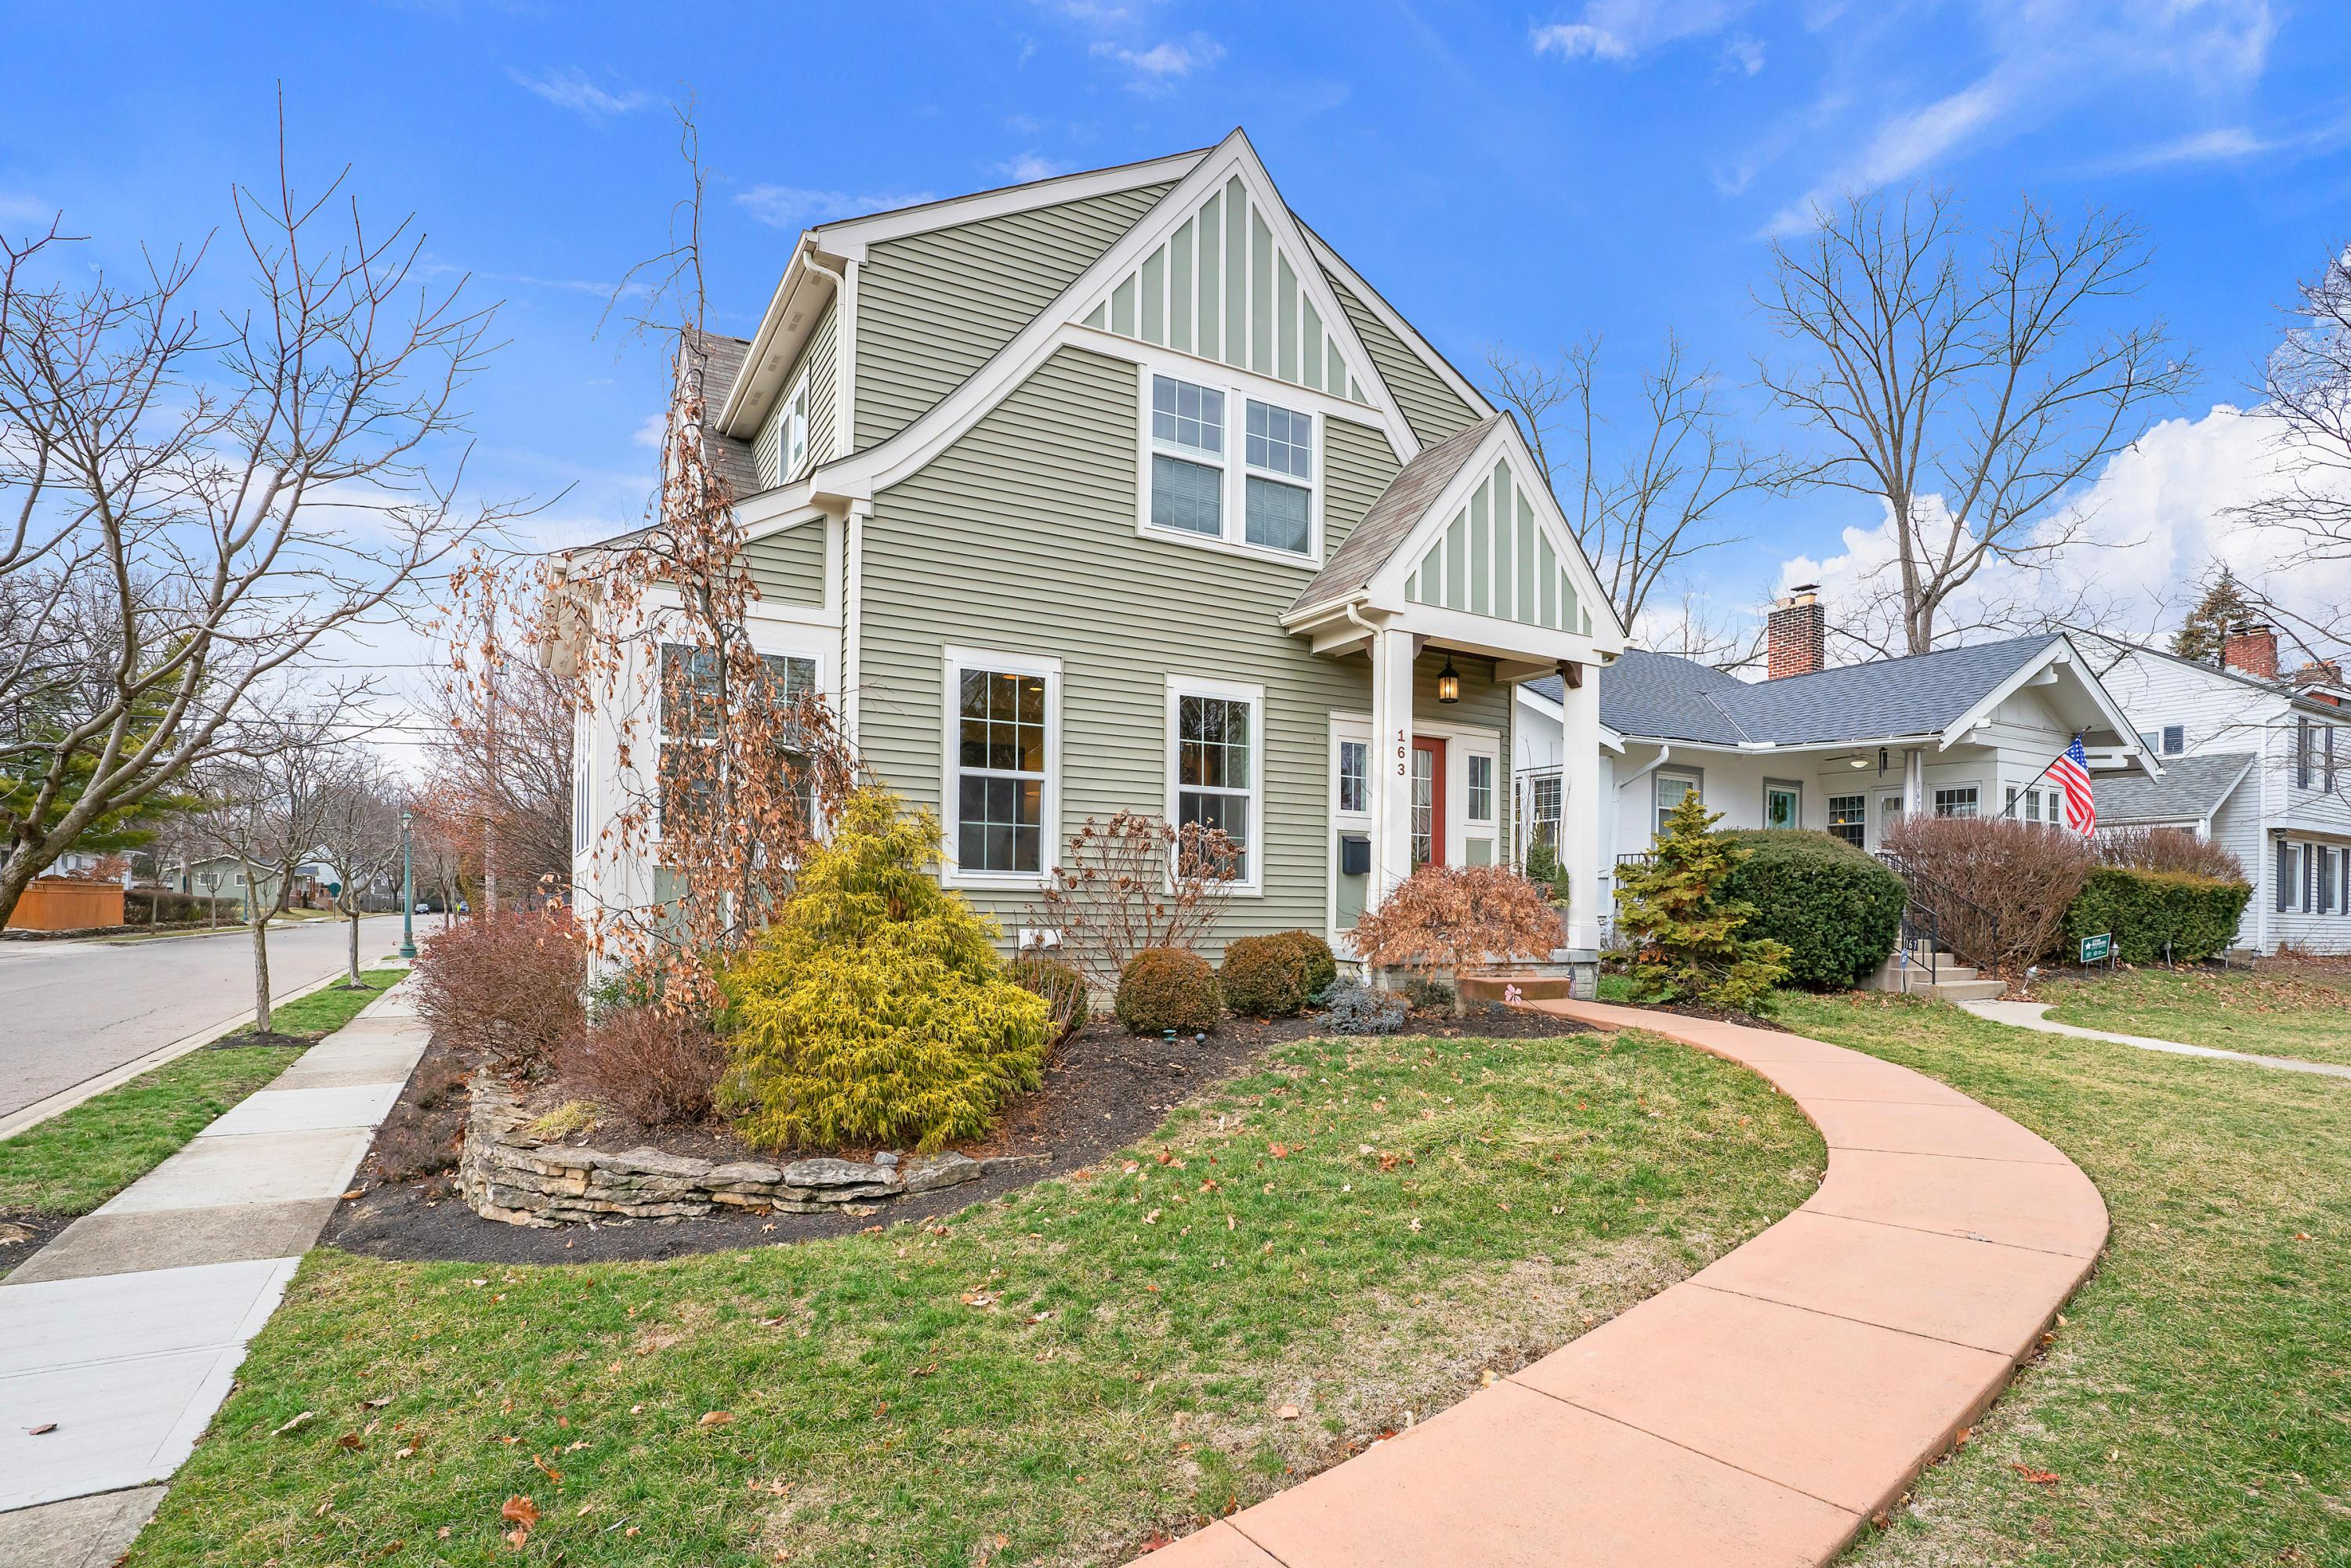 Photo of 163 Cassingham Road, Bexley, OH 43209